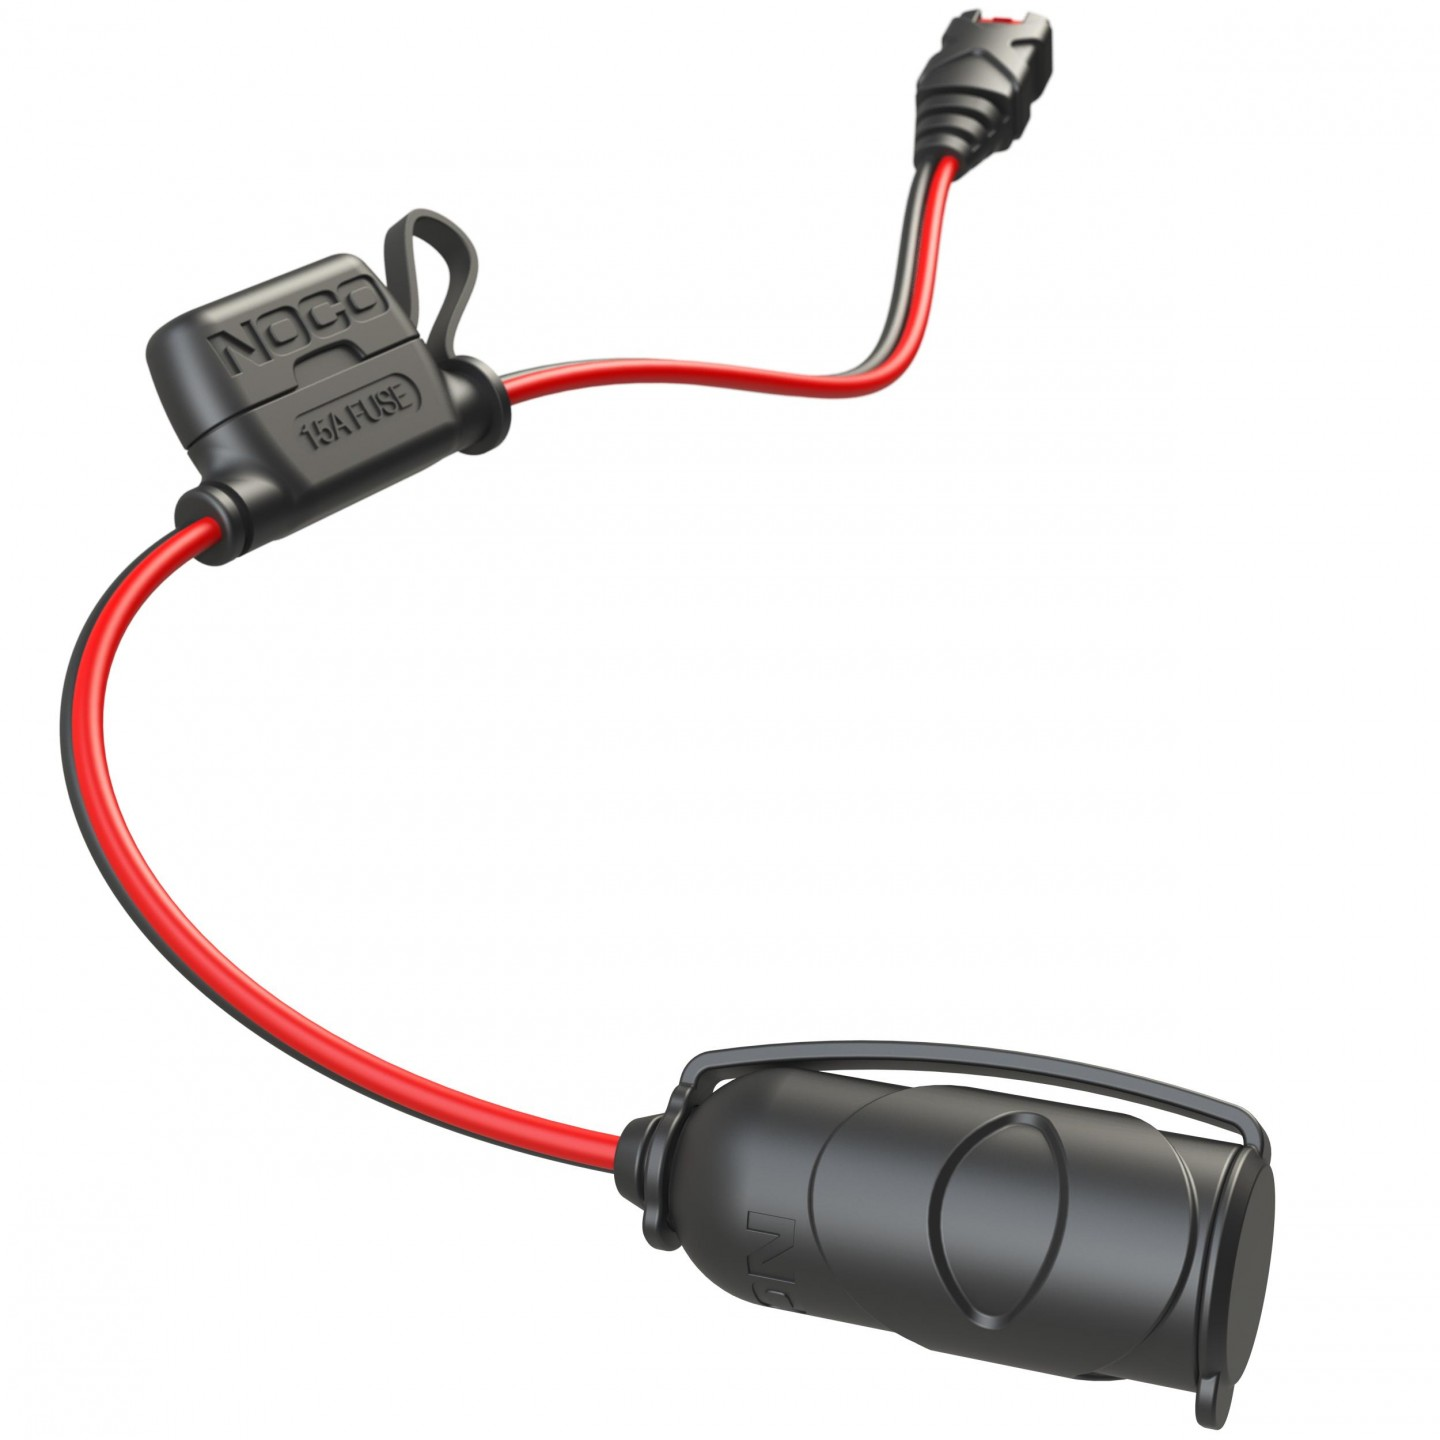 hight resolution of gc010 x connect 12v female plug